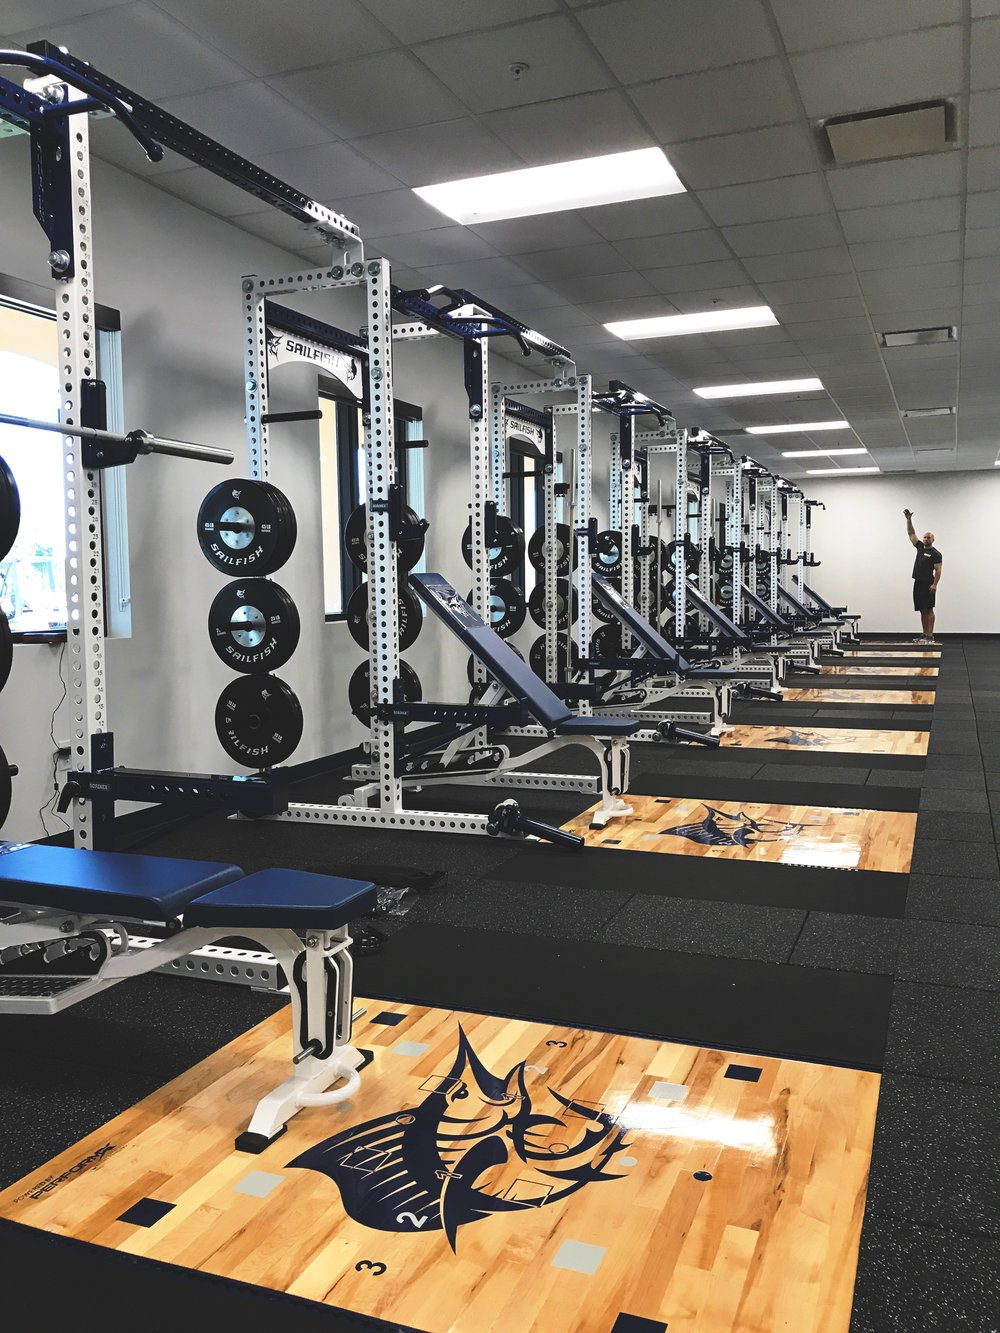 The 3,000 square foot Sailfish strength facility is nearly complete.